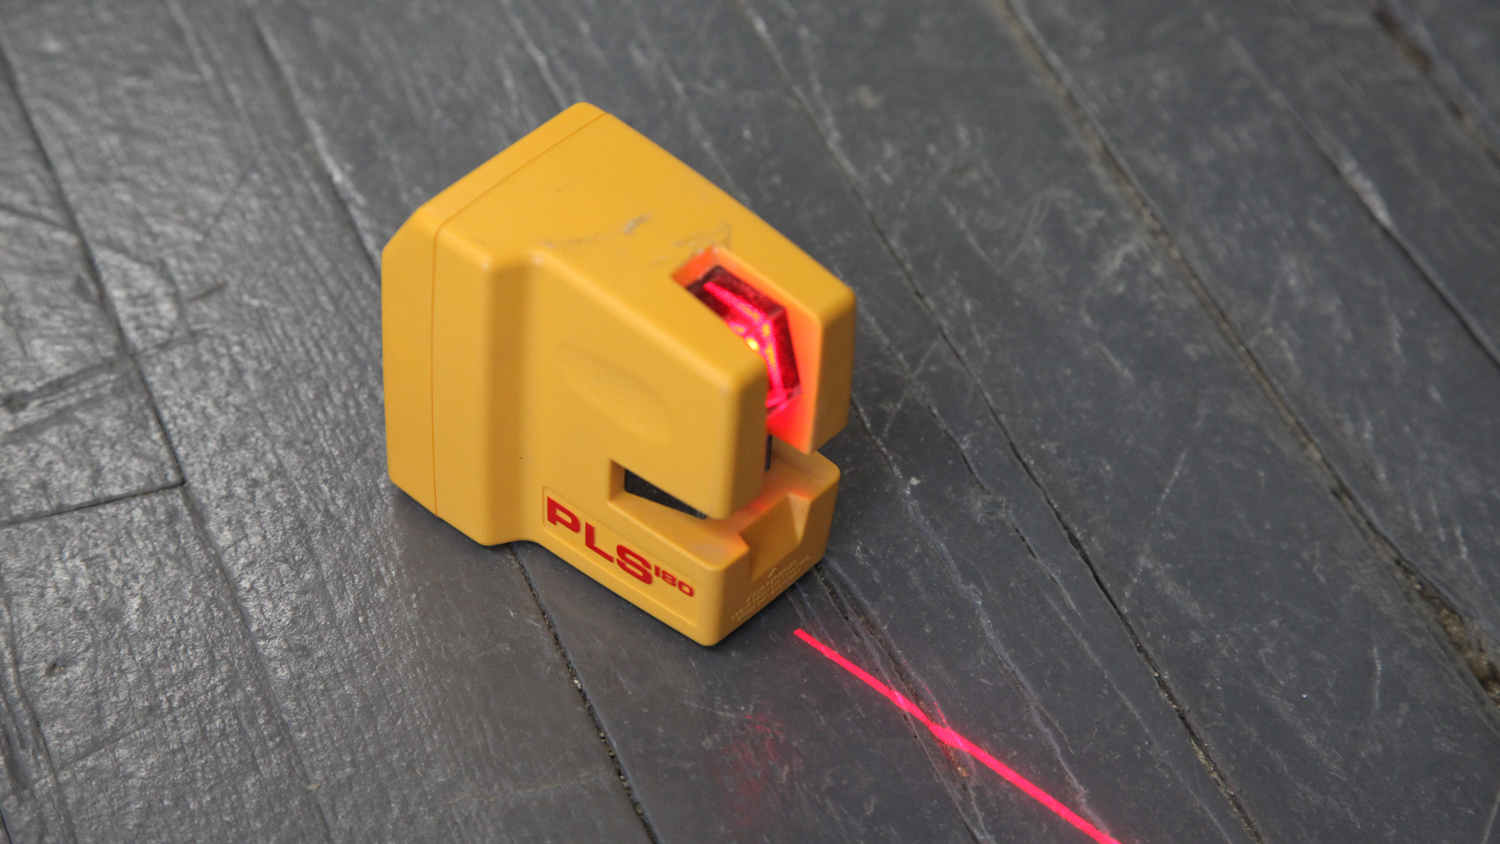 PLS180 laser plumb/level - SO many saved hours.